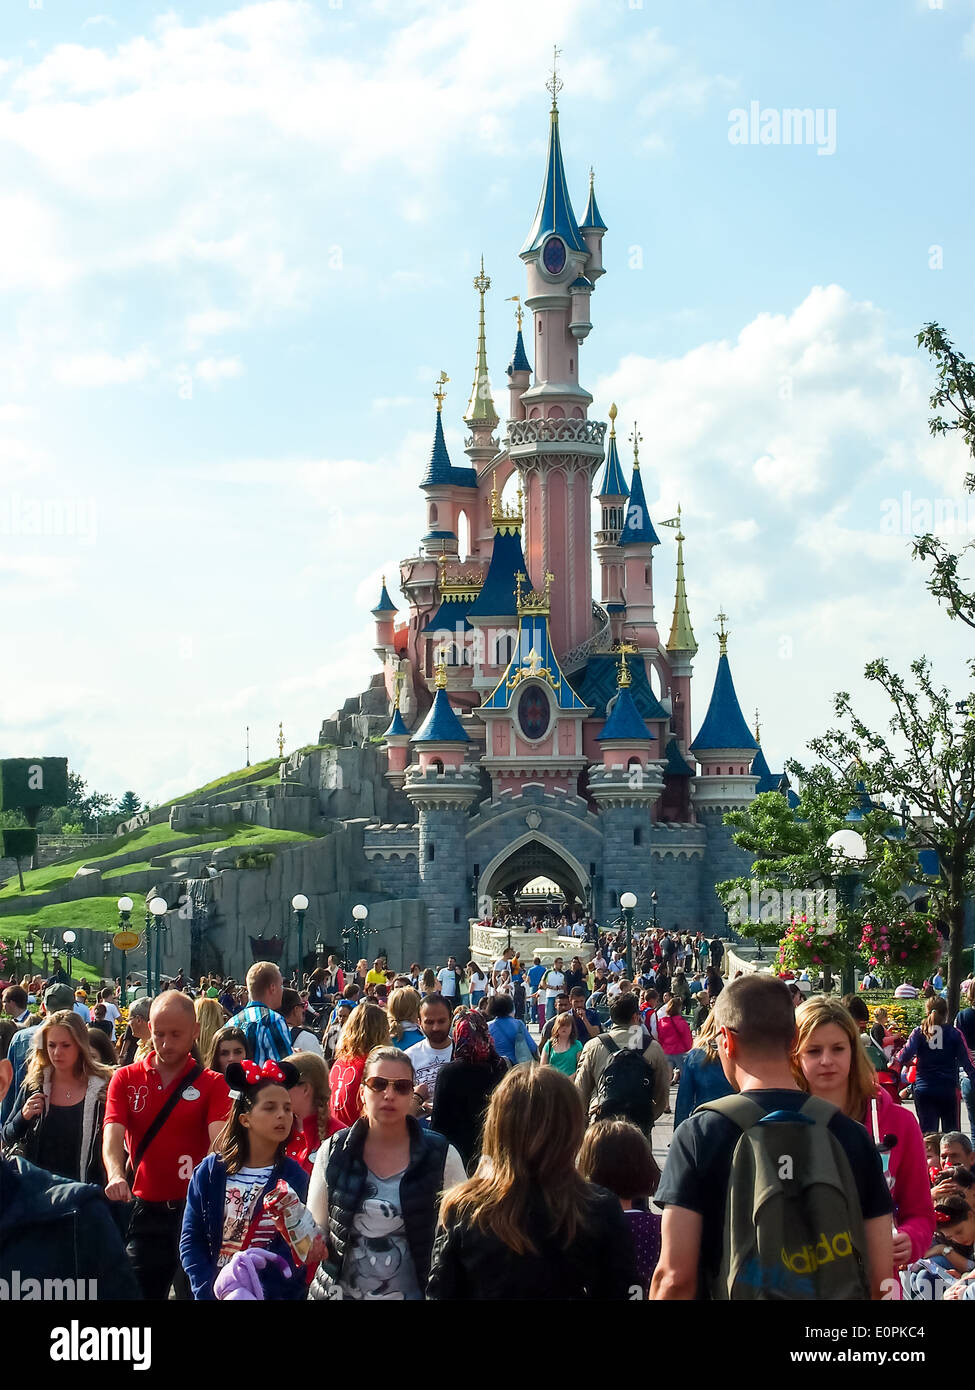 Tourists in front of Sleeping Beauty's castle at Disneyland Paris, france - Stock Image